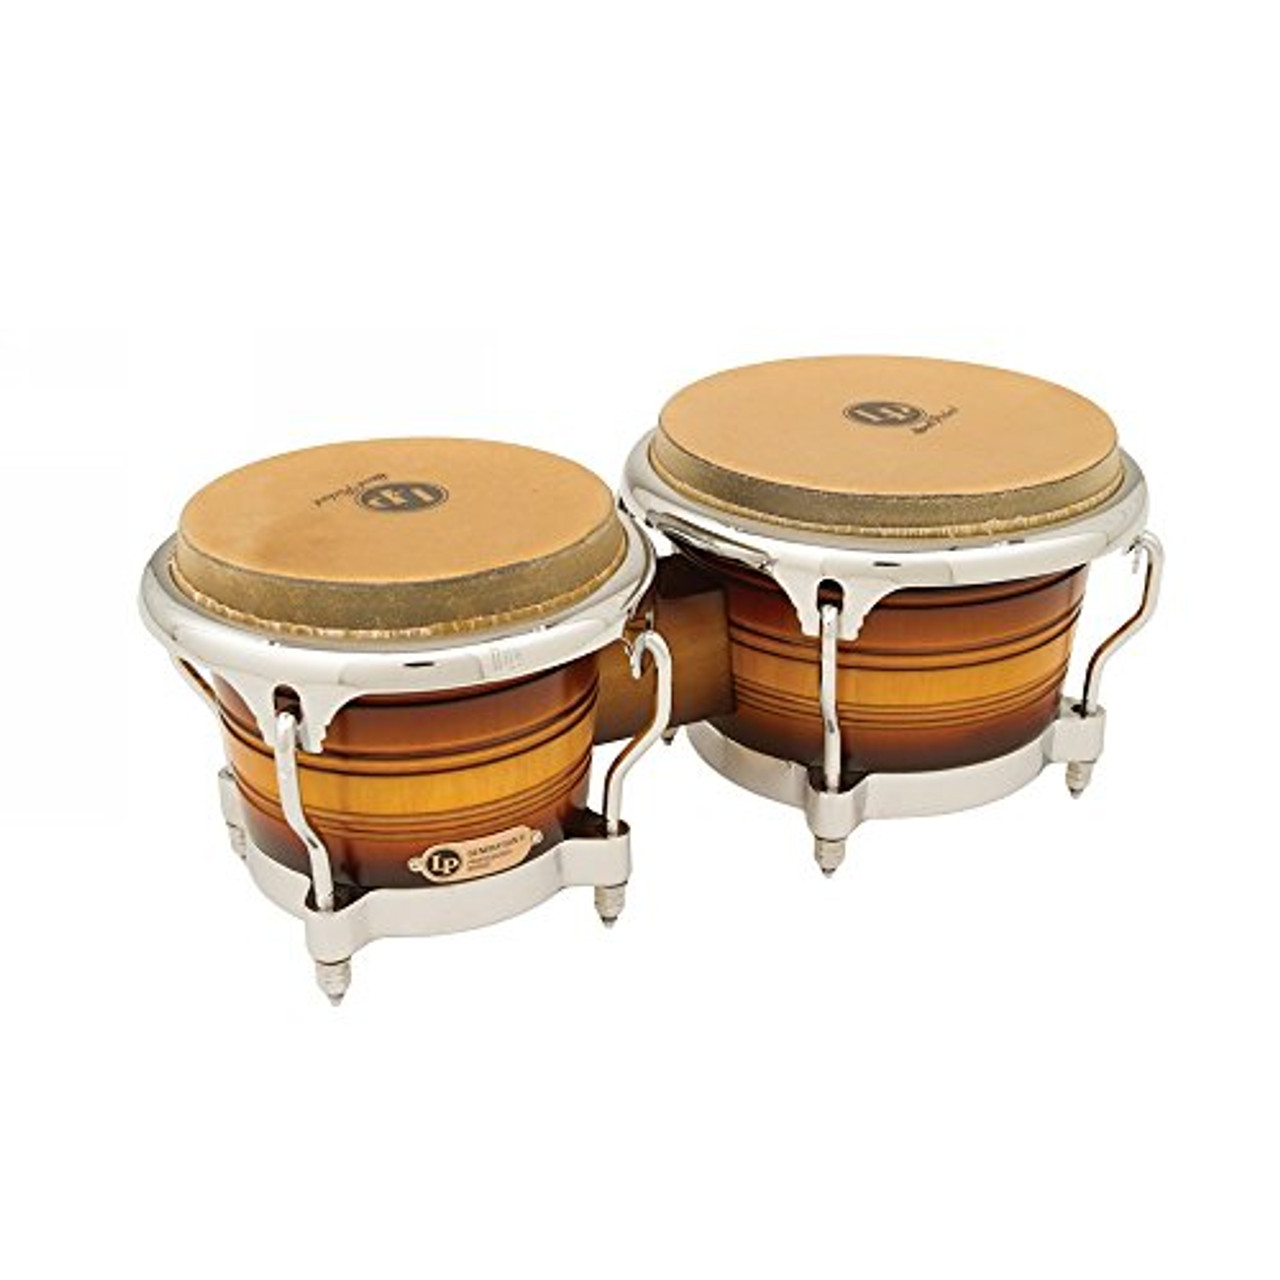 Drum Workshop Gen 2 Ccii 7 1/4-8 5/8 Bongo Oak Msb Cr